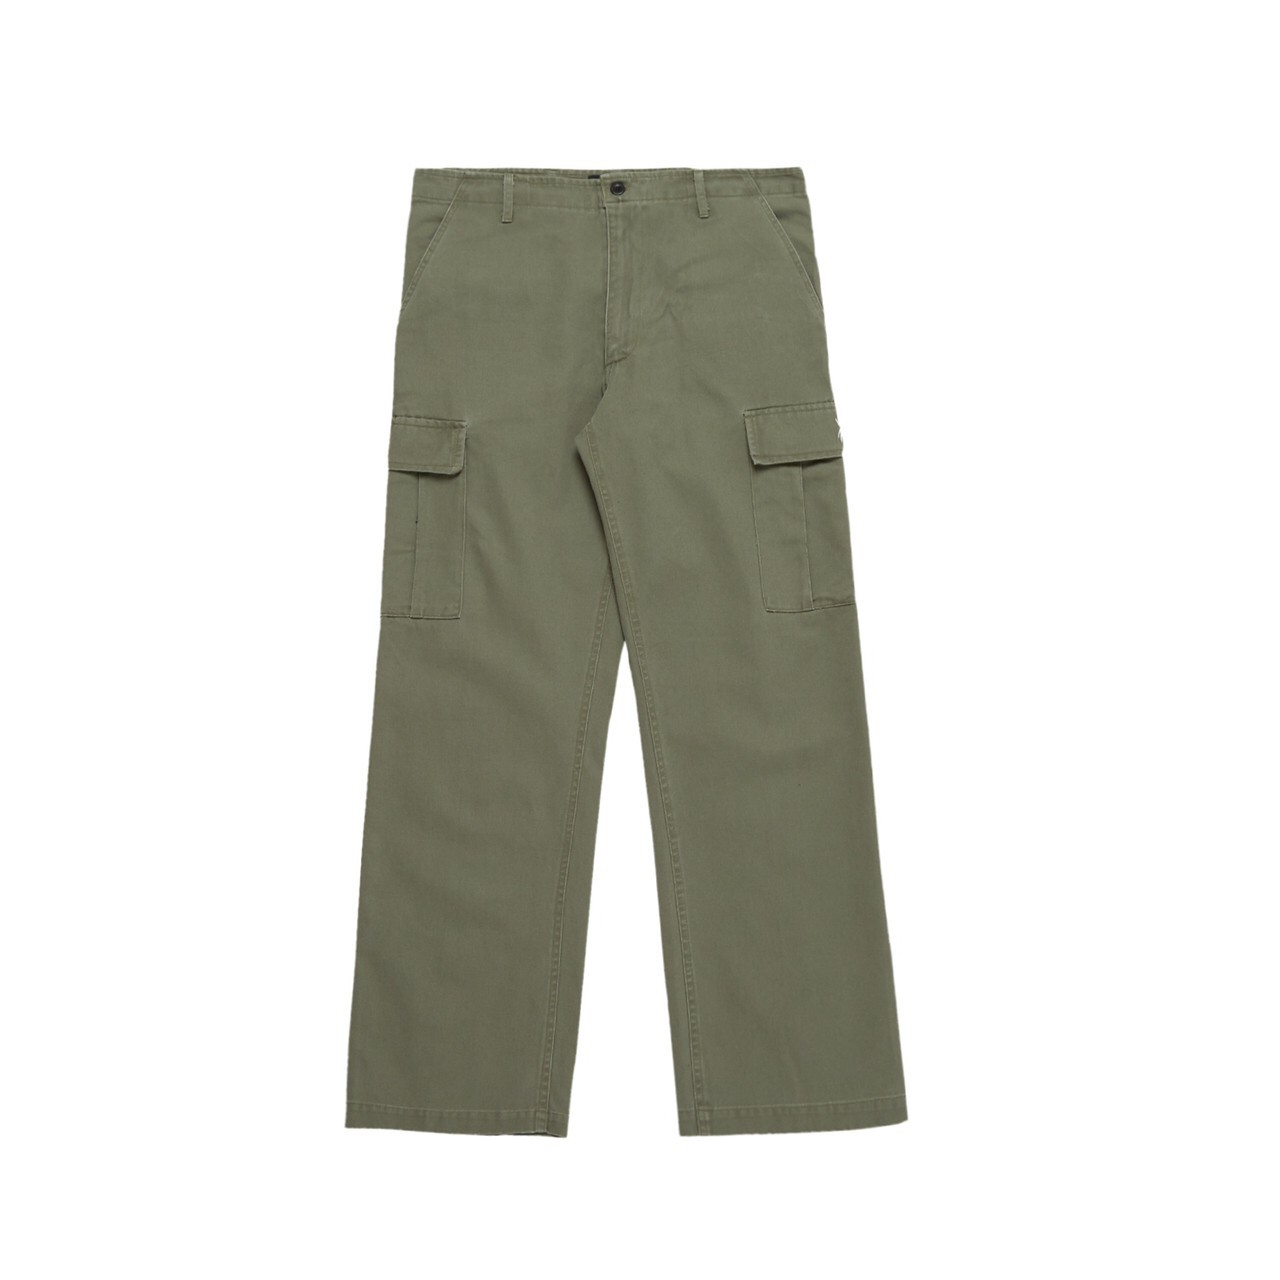 FUXURY SPIDER WASHED CARGO PANTS KHAKI